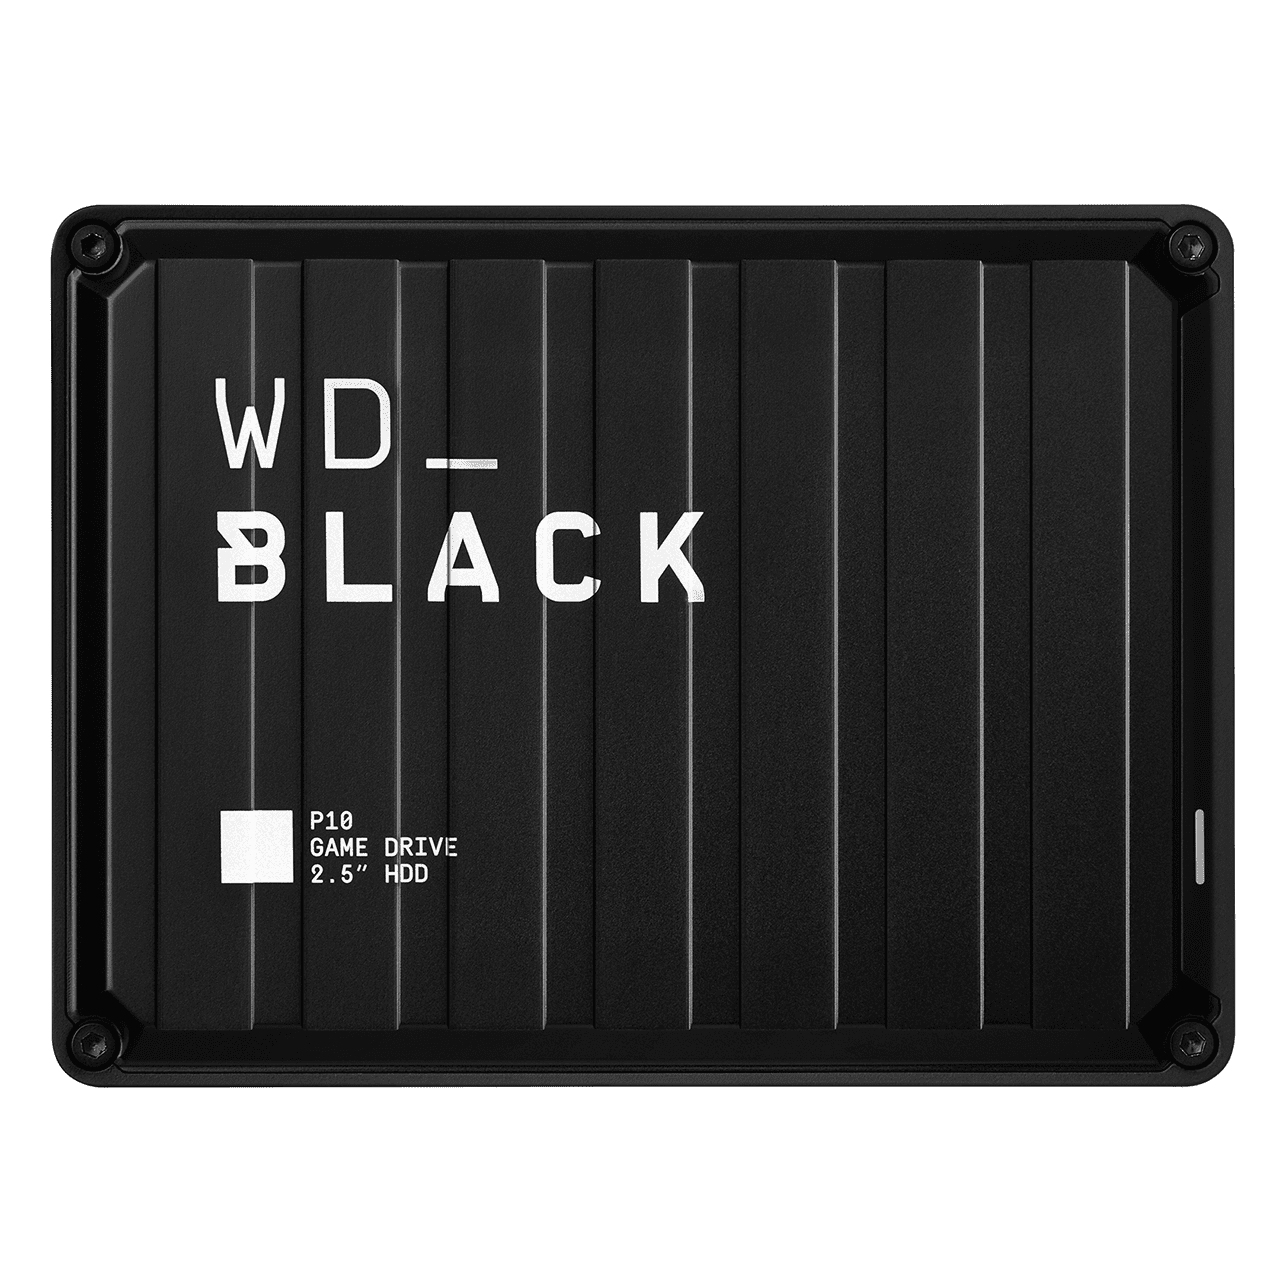 Western Digital P10 Game Drive disco duro externo 2000 GB Negro